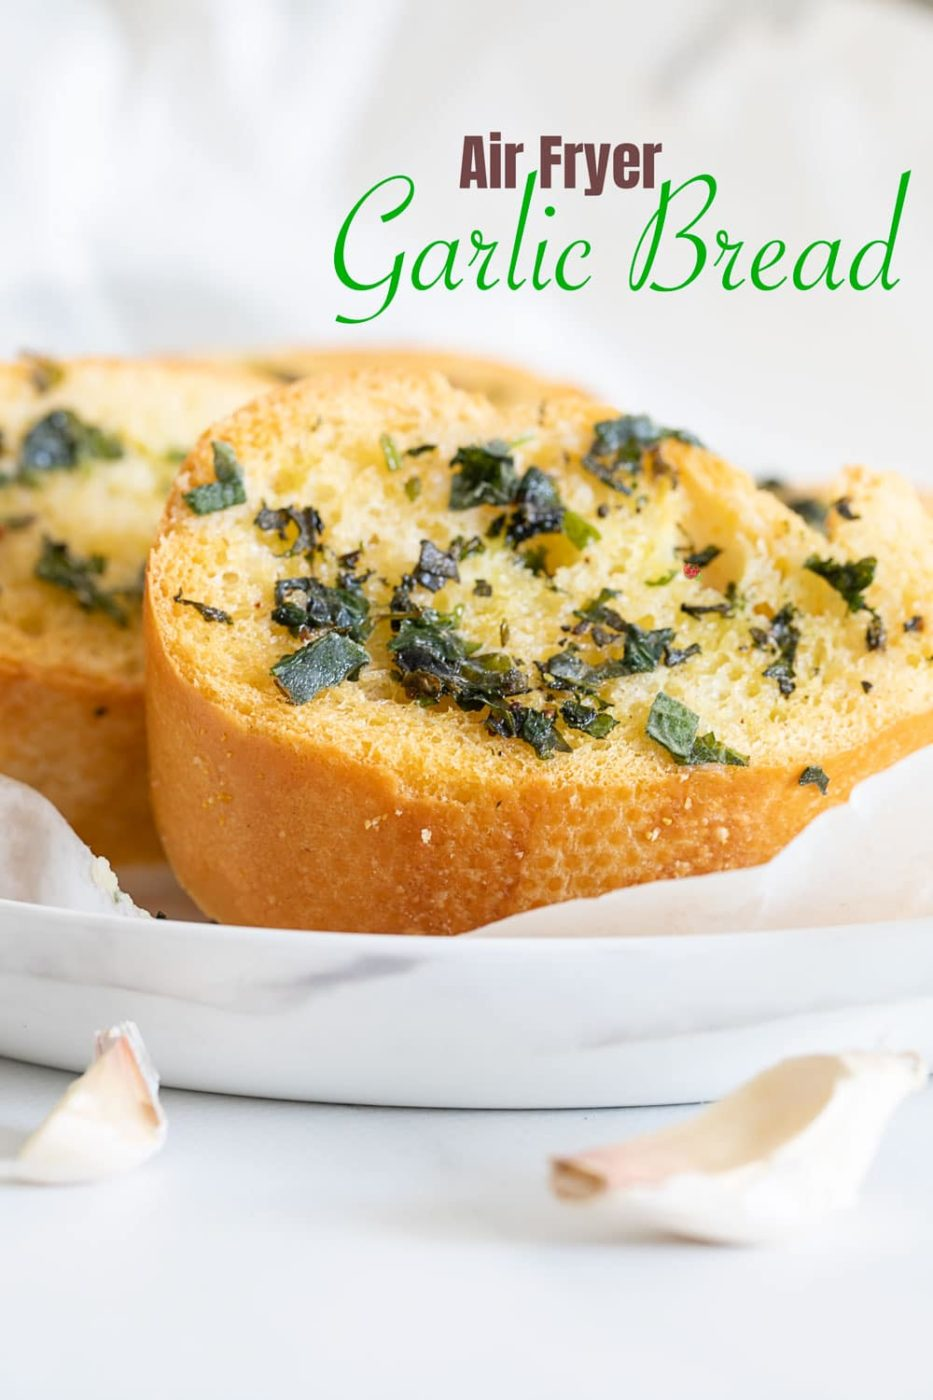 Side view of a slice of garlic bread on white plate